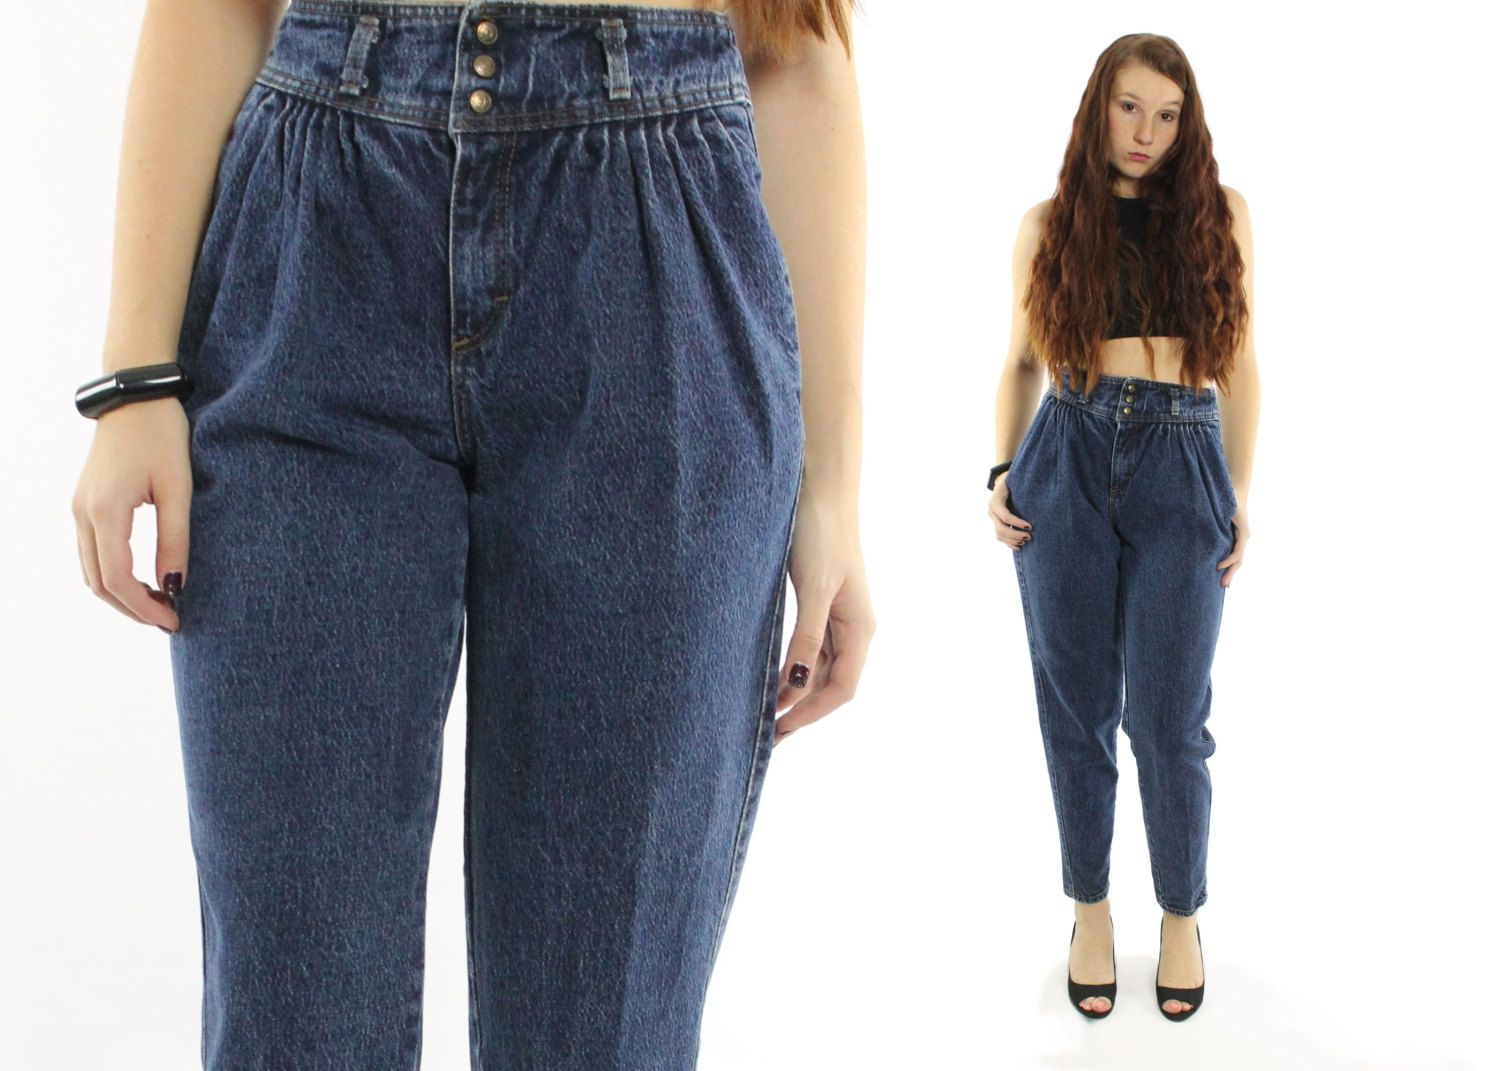 aa52ce06631 Vintage 80s Pleated Jeans High Waisted Pants Darl Blue Denim Tapered ...